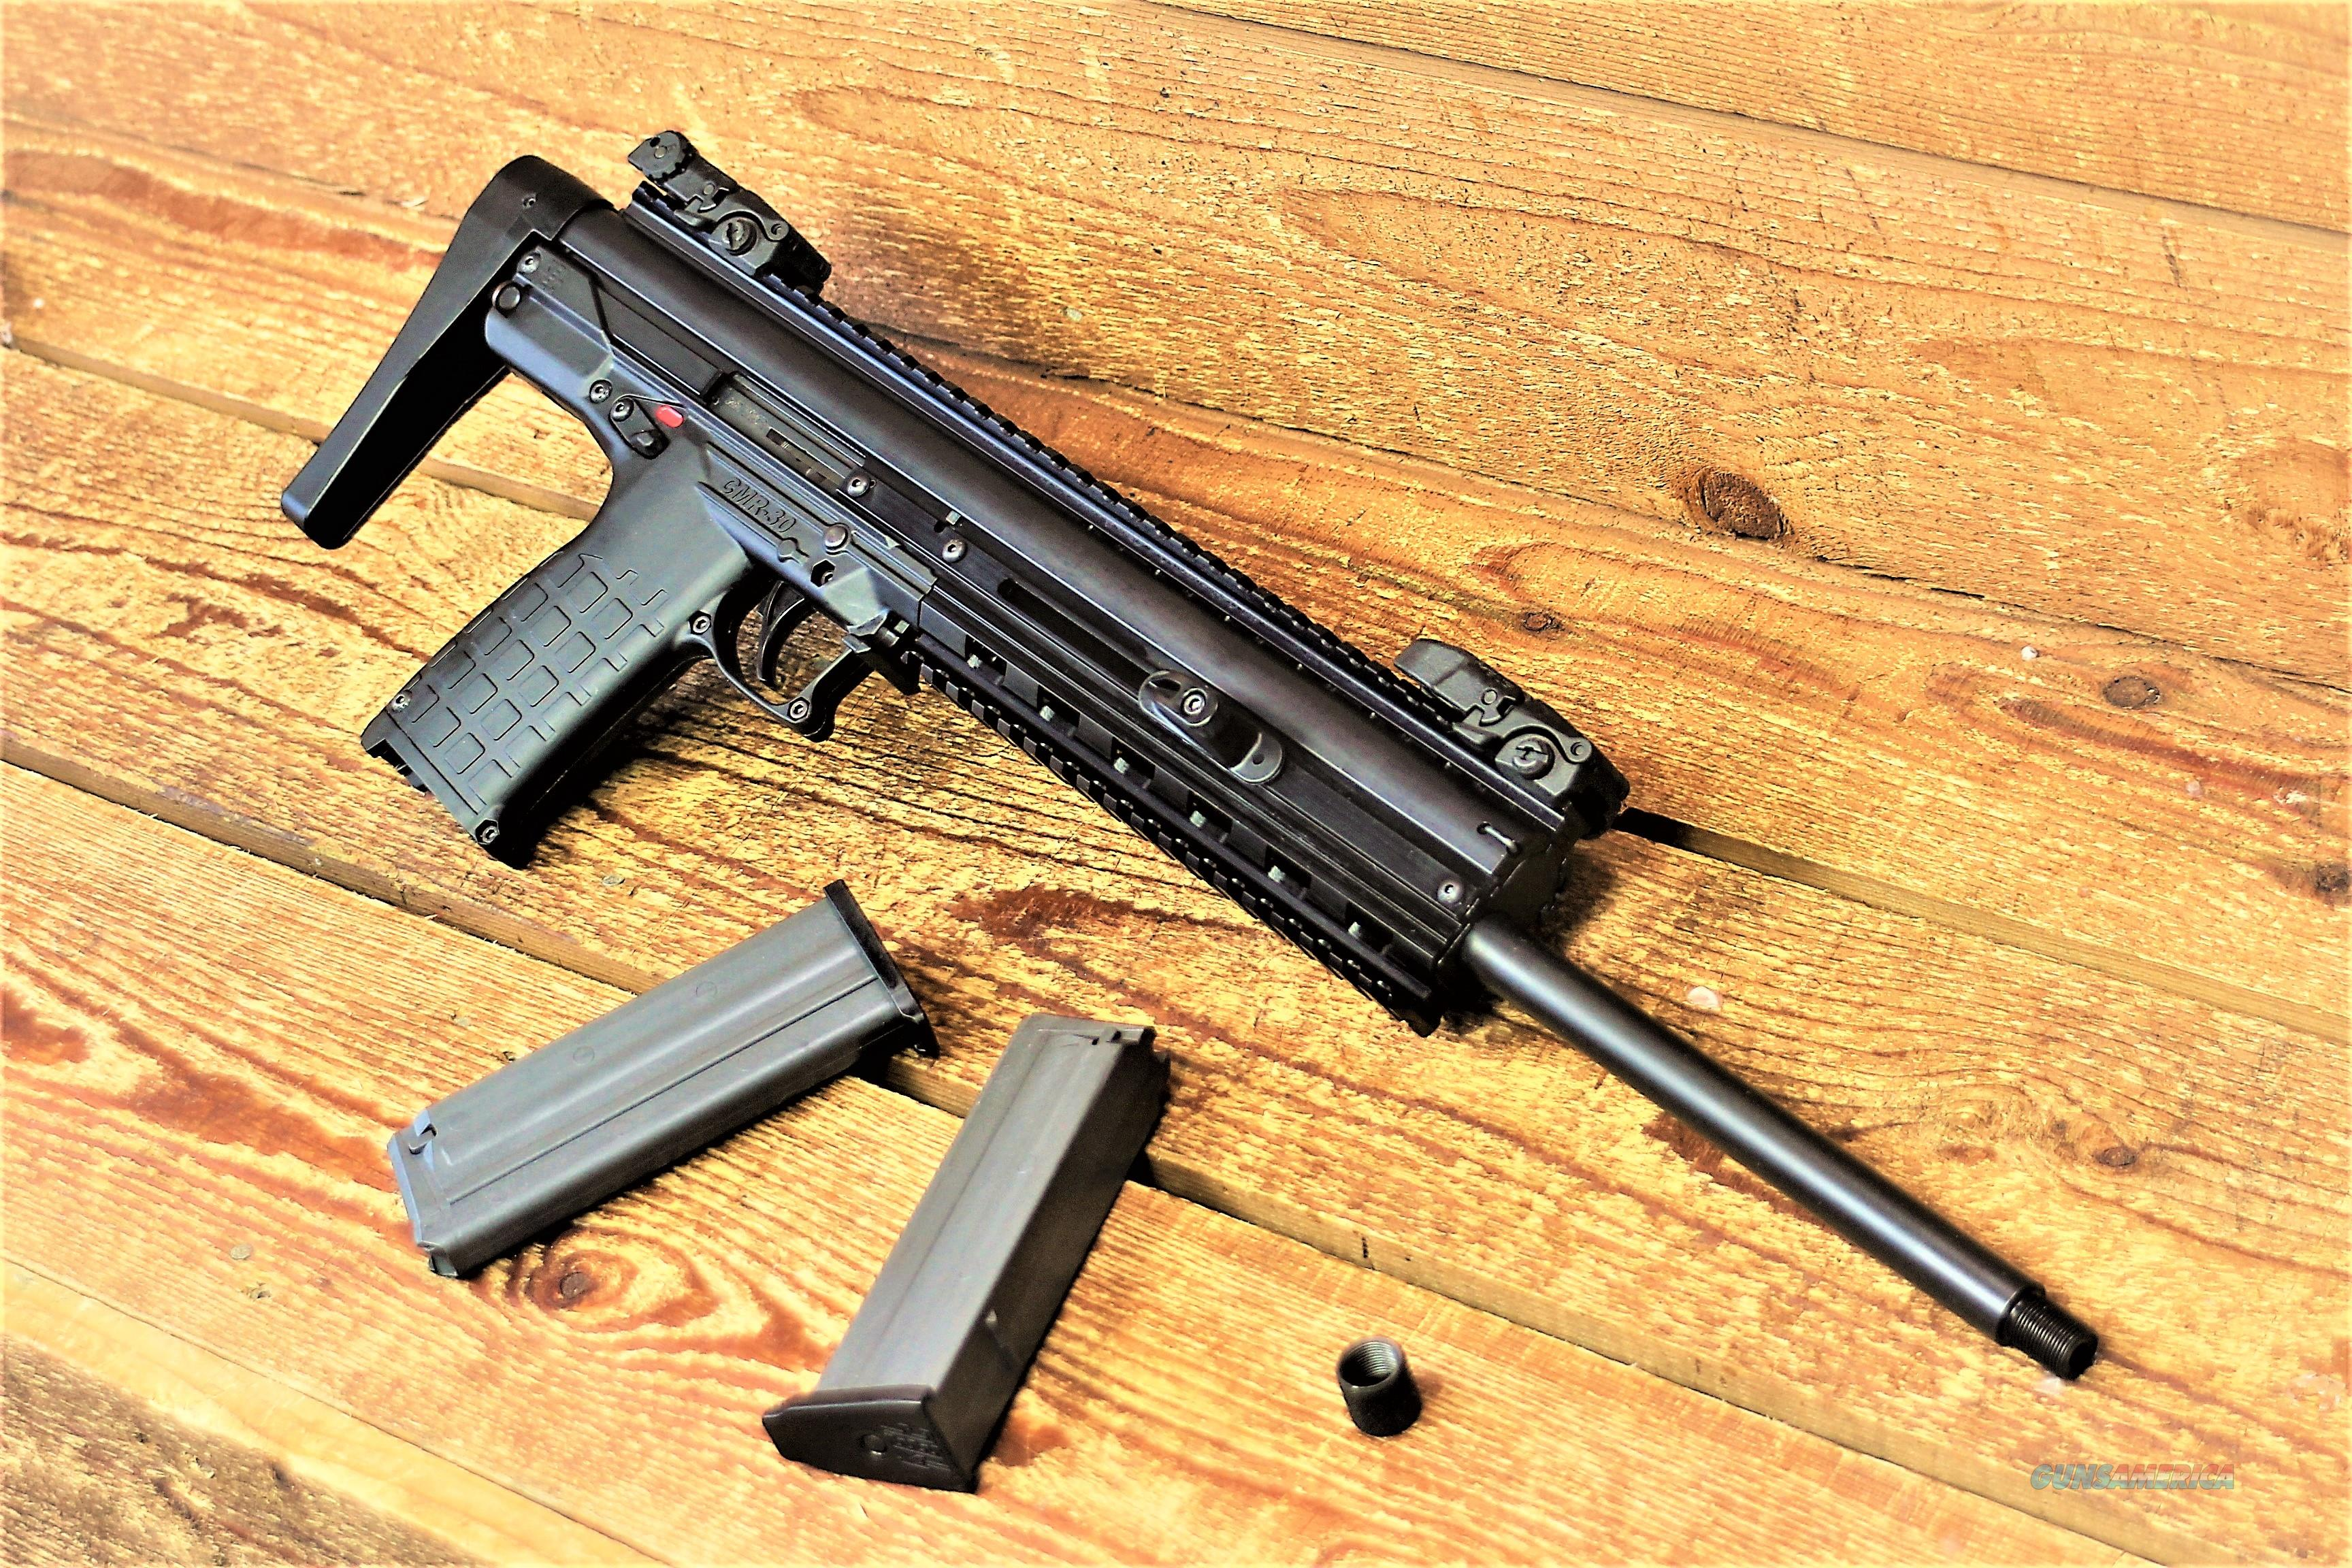 """EASY PAY $38 DOWN LAYAWAY 18 MONTHLY  PAYMENTS Kel-Tec CMR-30 Carbine Rimfire Higher velocity Around 2,000 feet per Second 22WMR Can kill Larger and Small game 16 in steel Threaded Barrel  RATE OF TWIST 1:14"""" ADJUSTABLE SIGHTS   CMR30BLK  Guns > Rifles > Kel-Tec Rifles"""